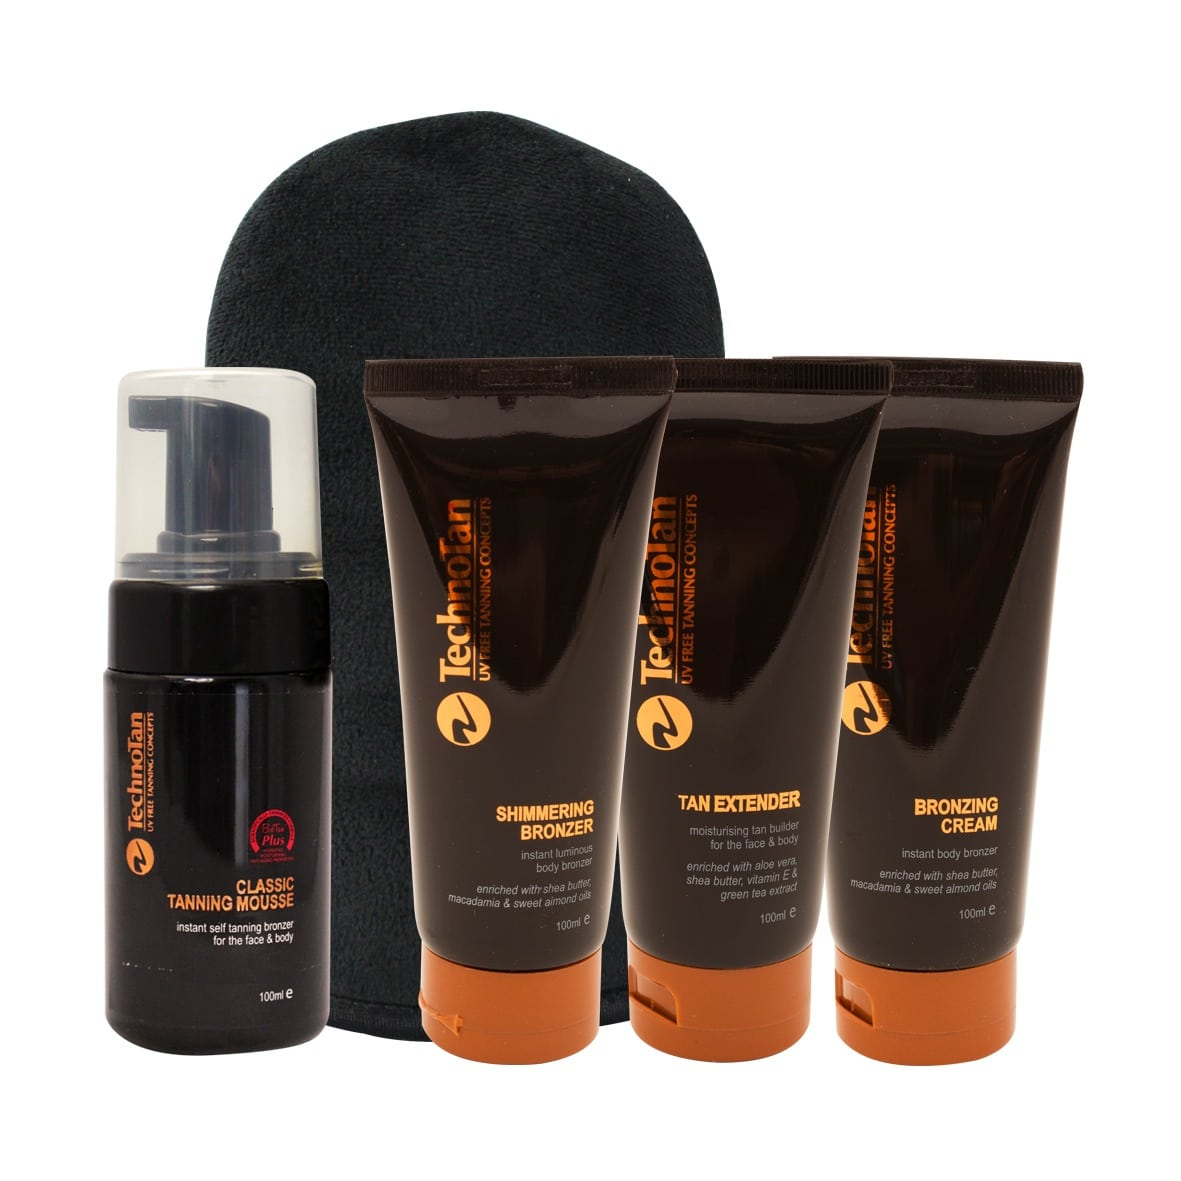 Tan Fanatic Product Pack with Mousse and Premium Mitt - Small Choc Fudge